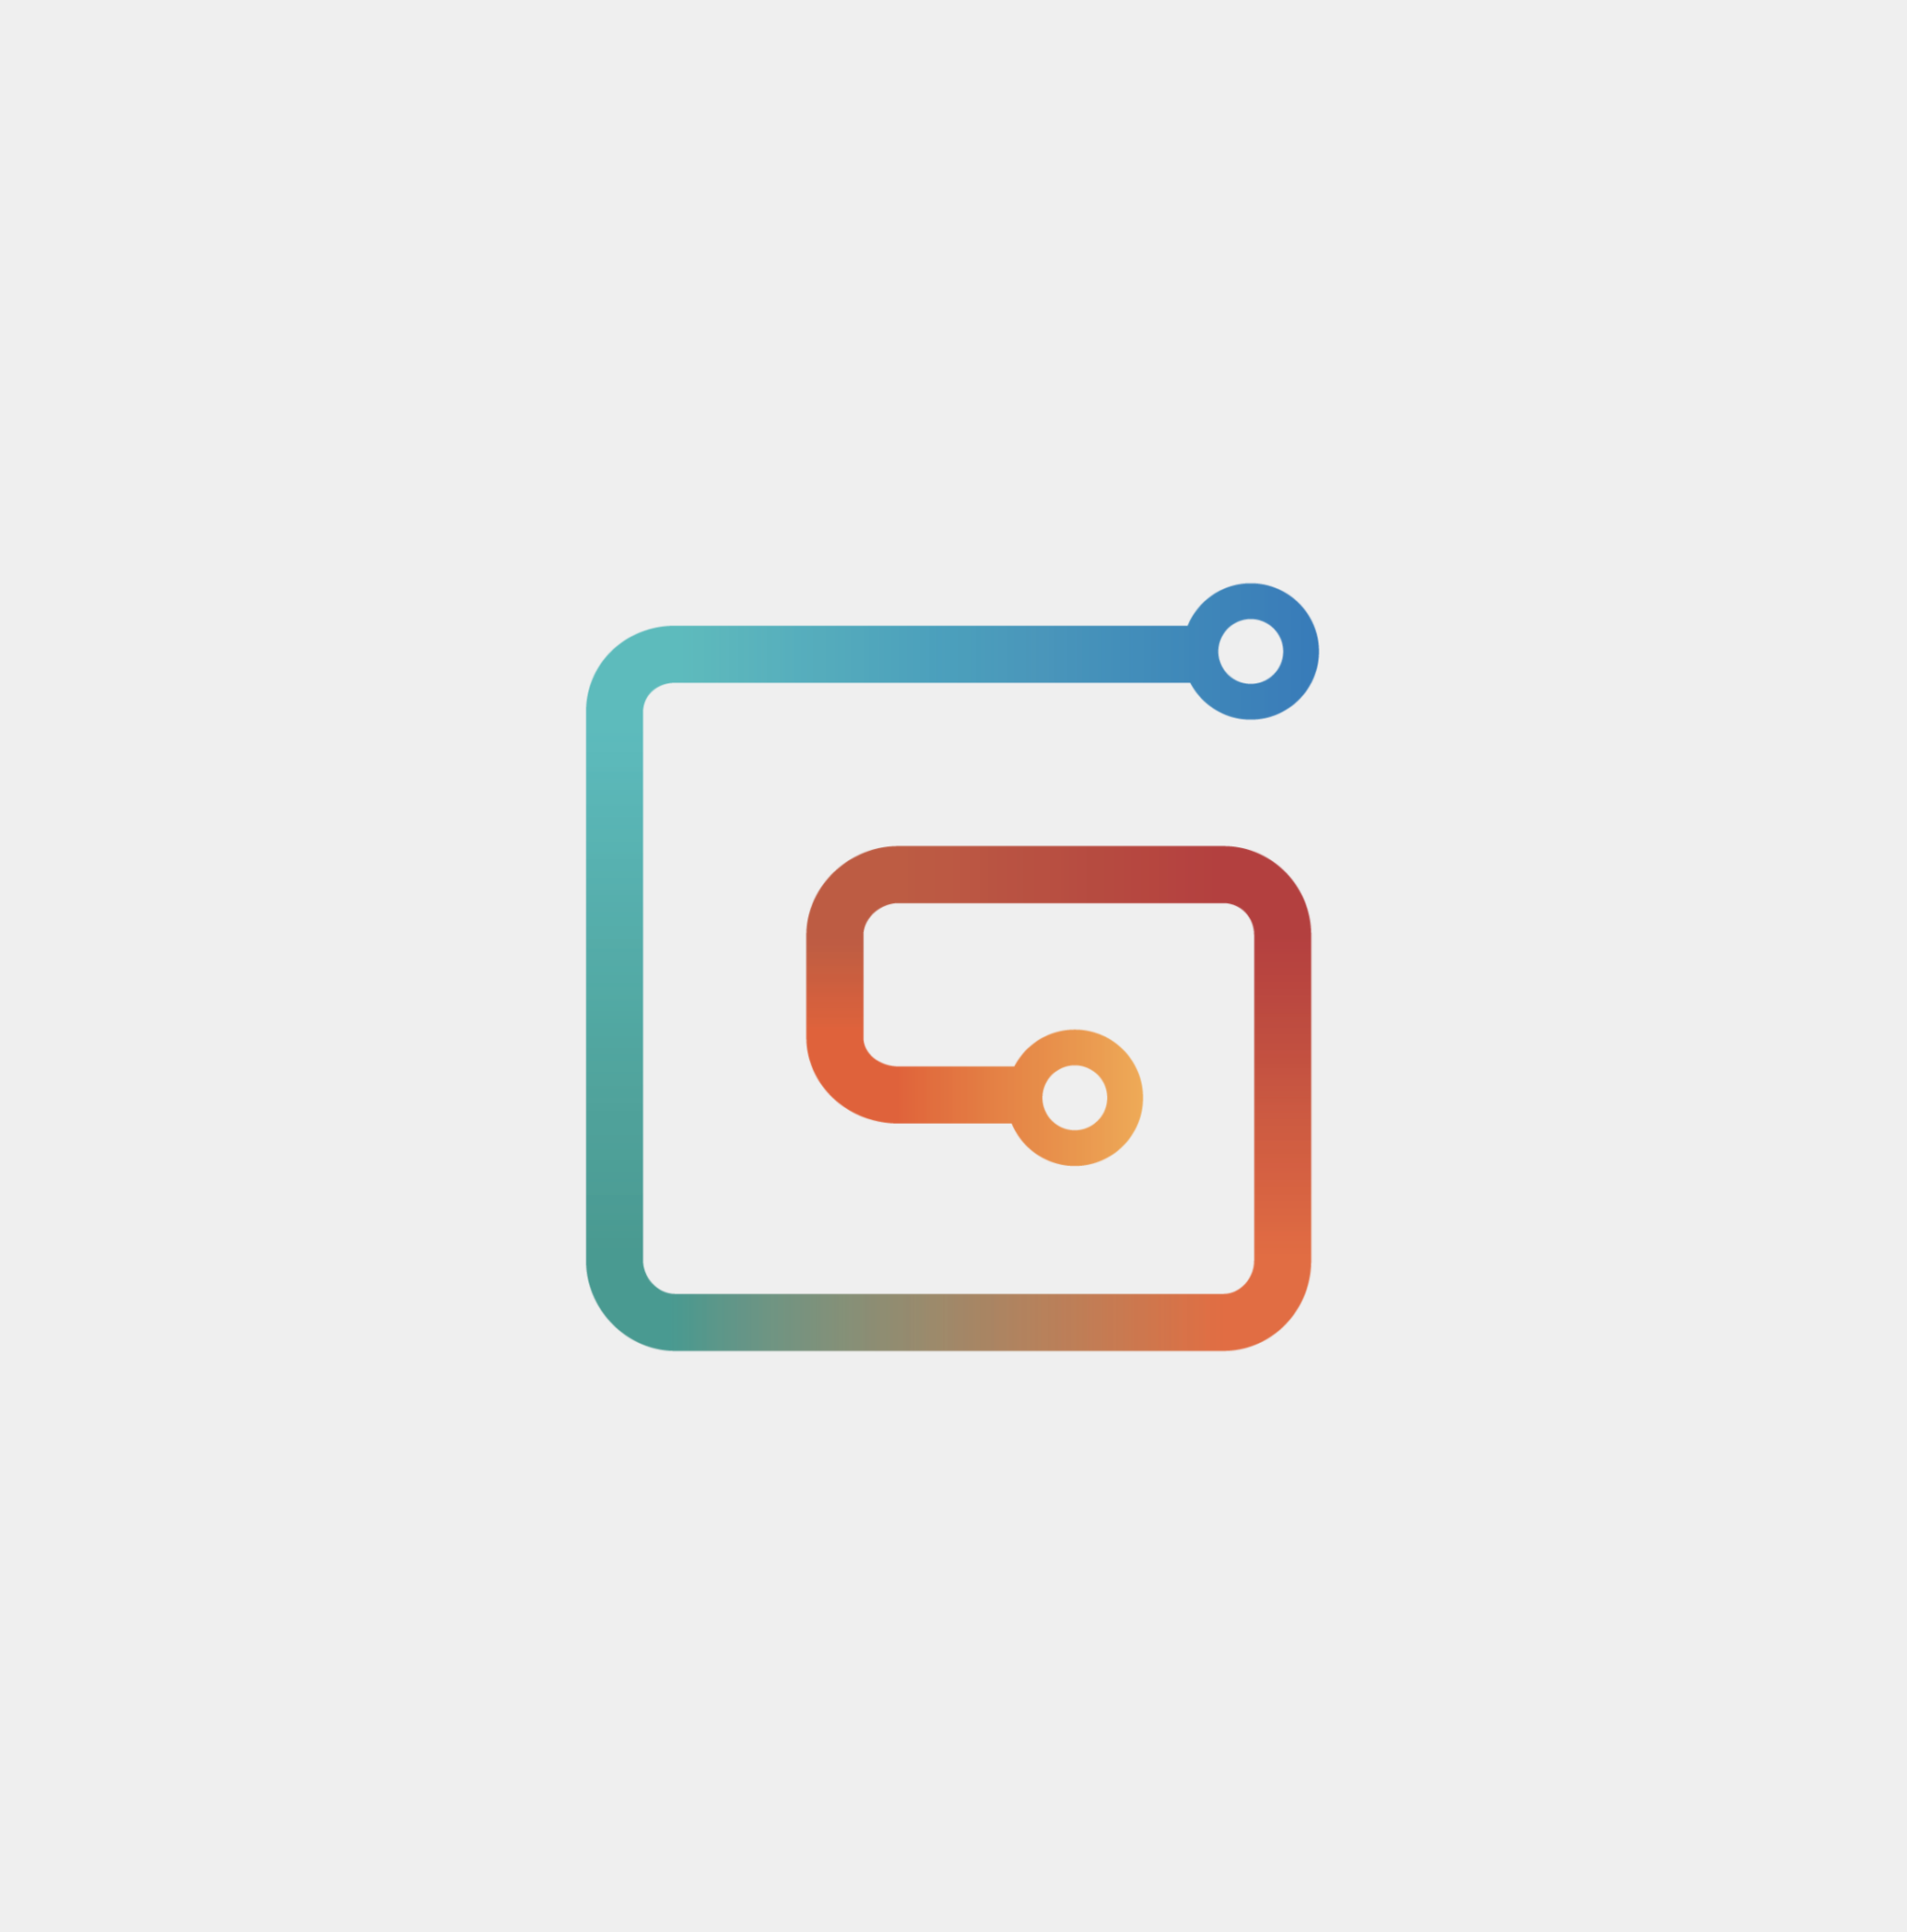 The logo for Gumroad.